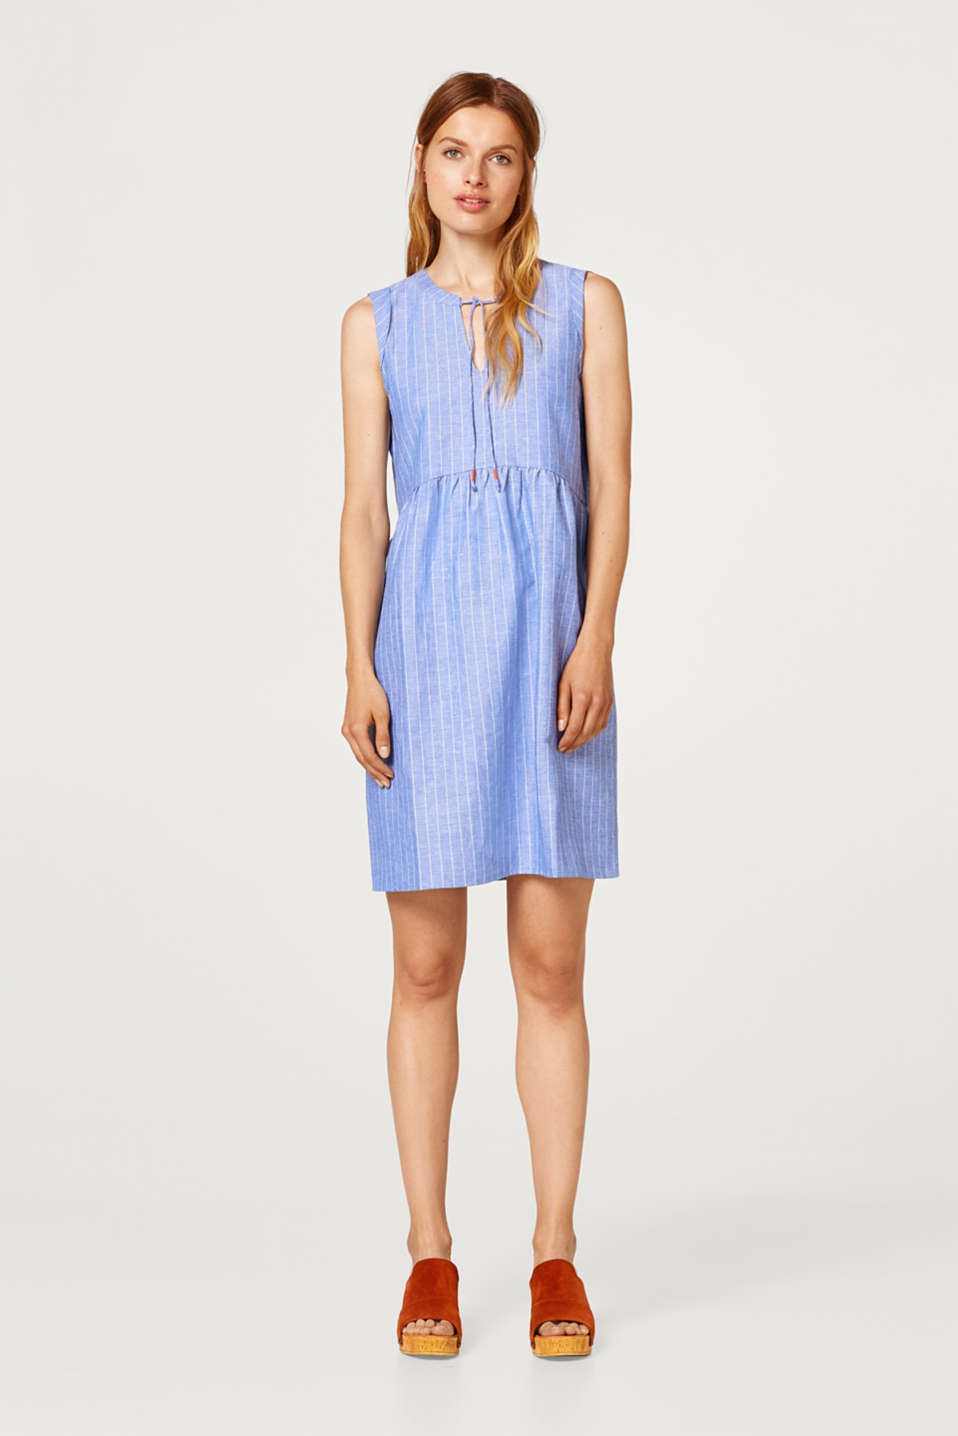 Made of blended linen: Dress with fine stripes